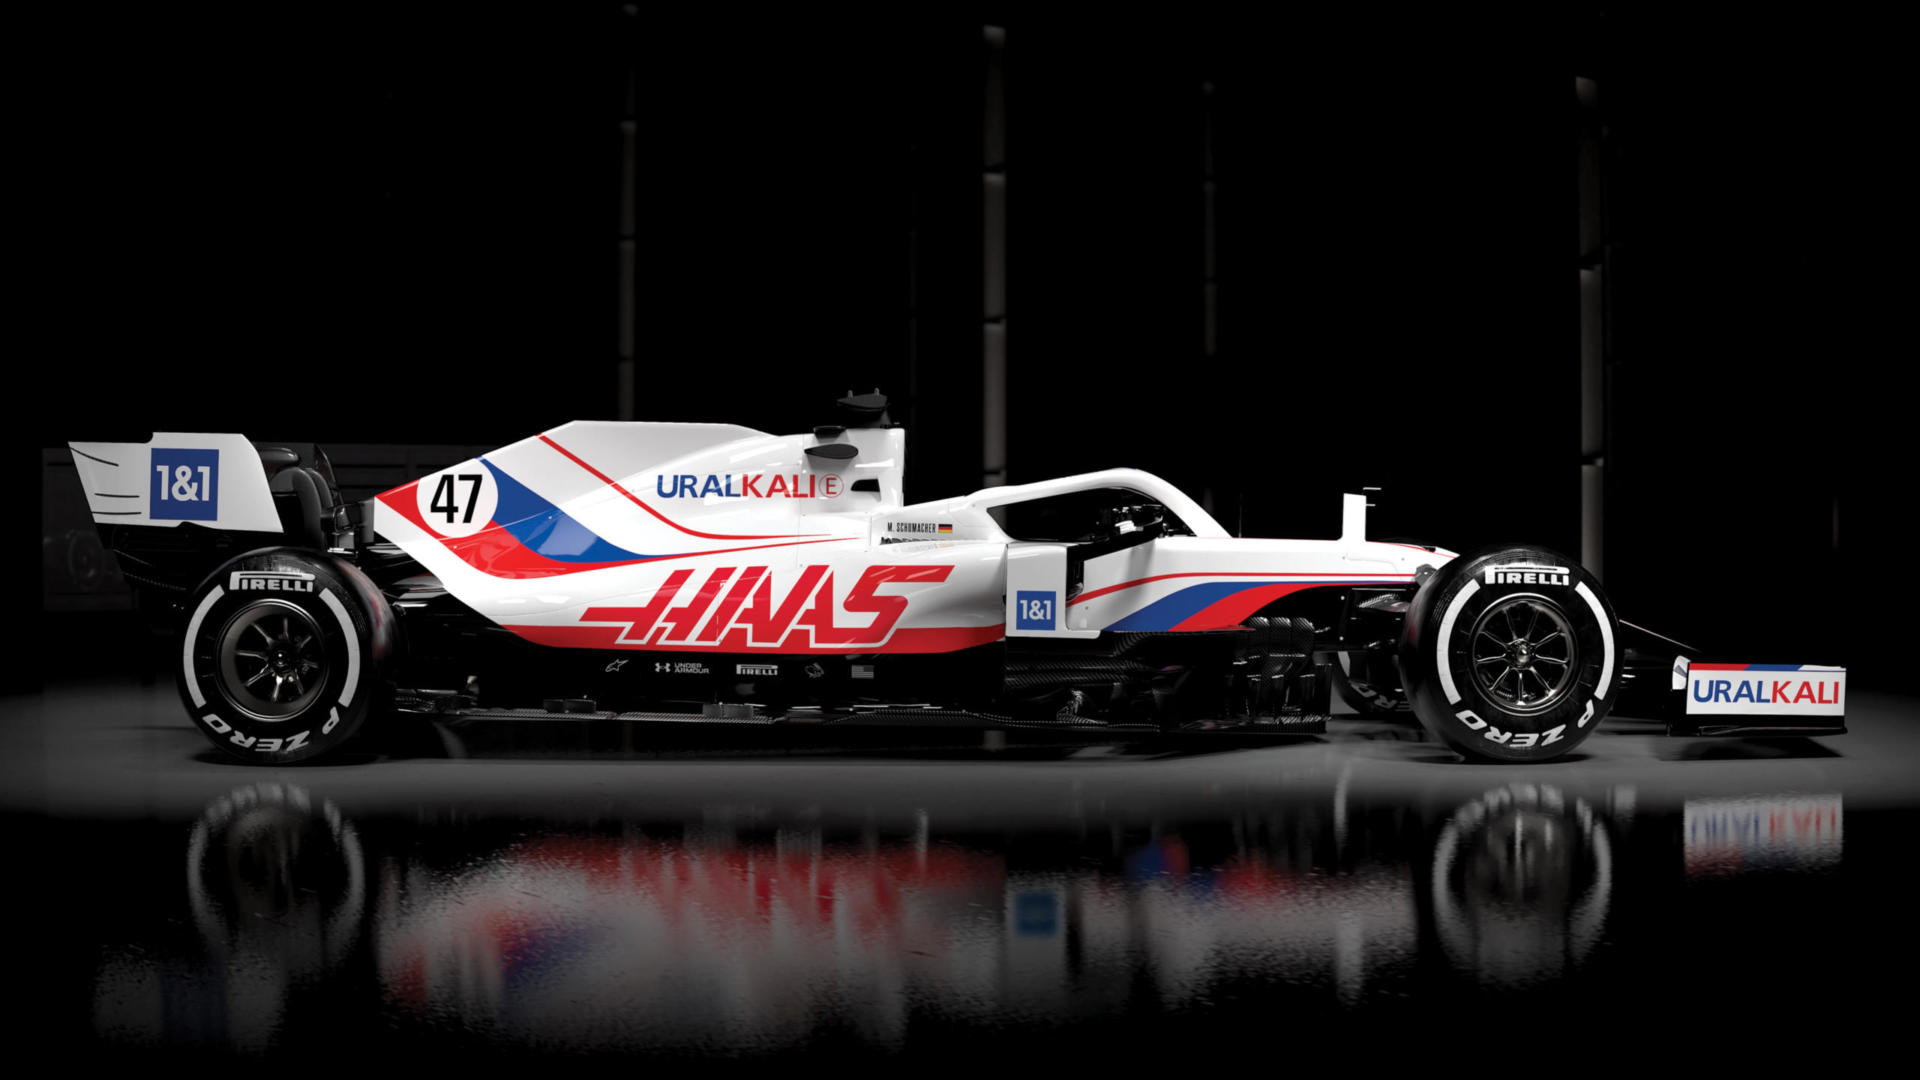 Other Than The Livery And The Driver, Everything Else Remains The Same At Haas